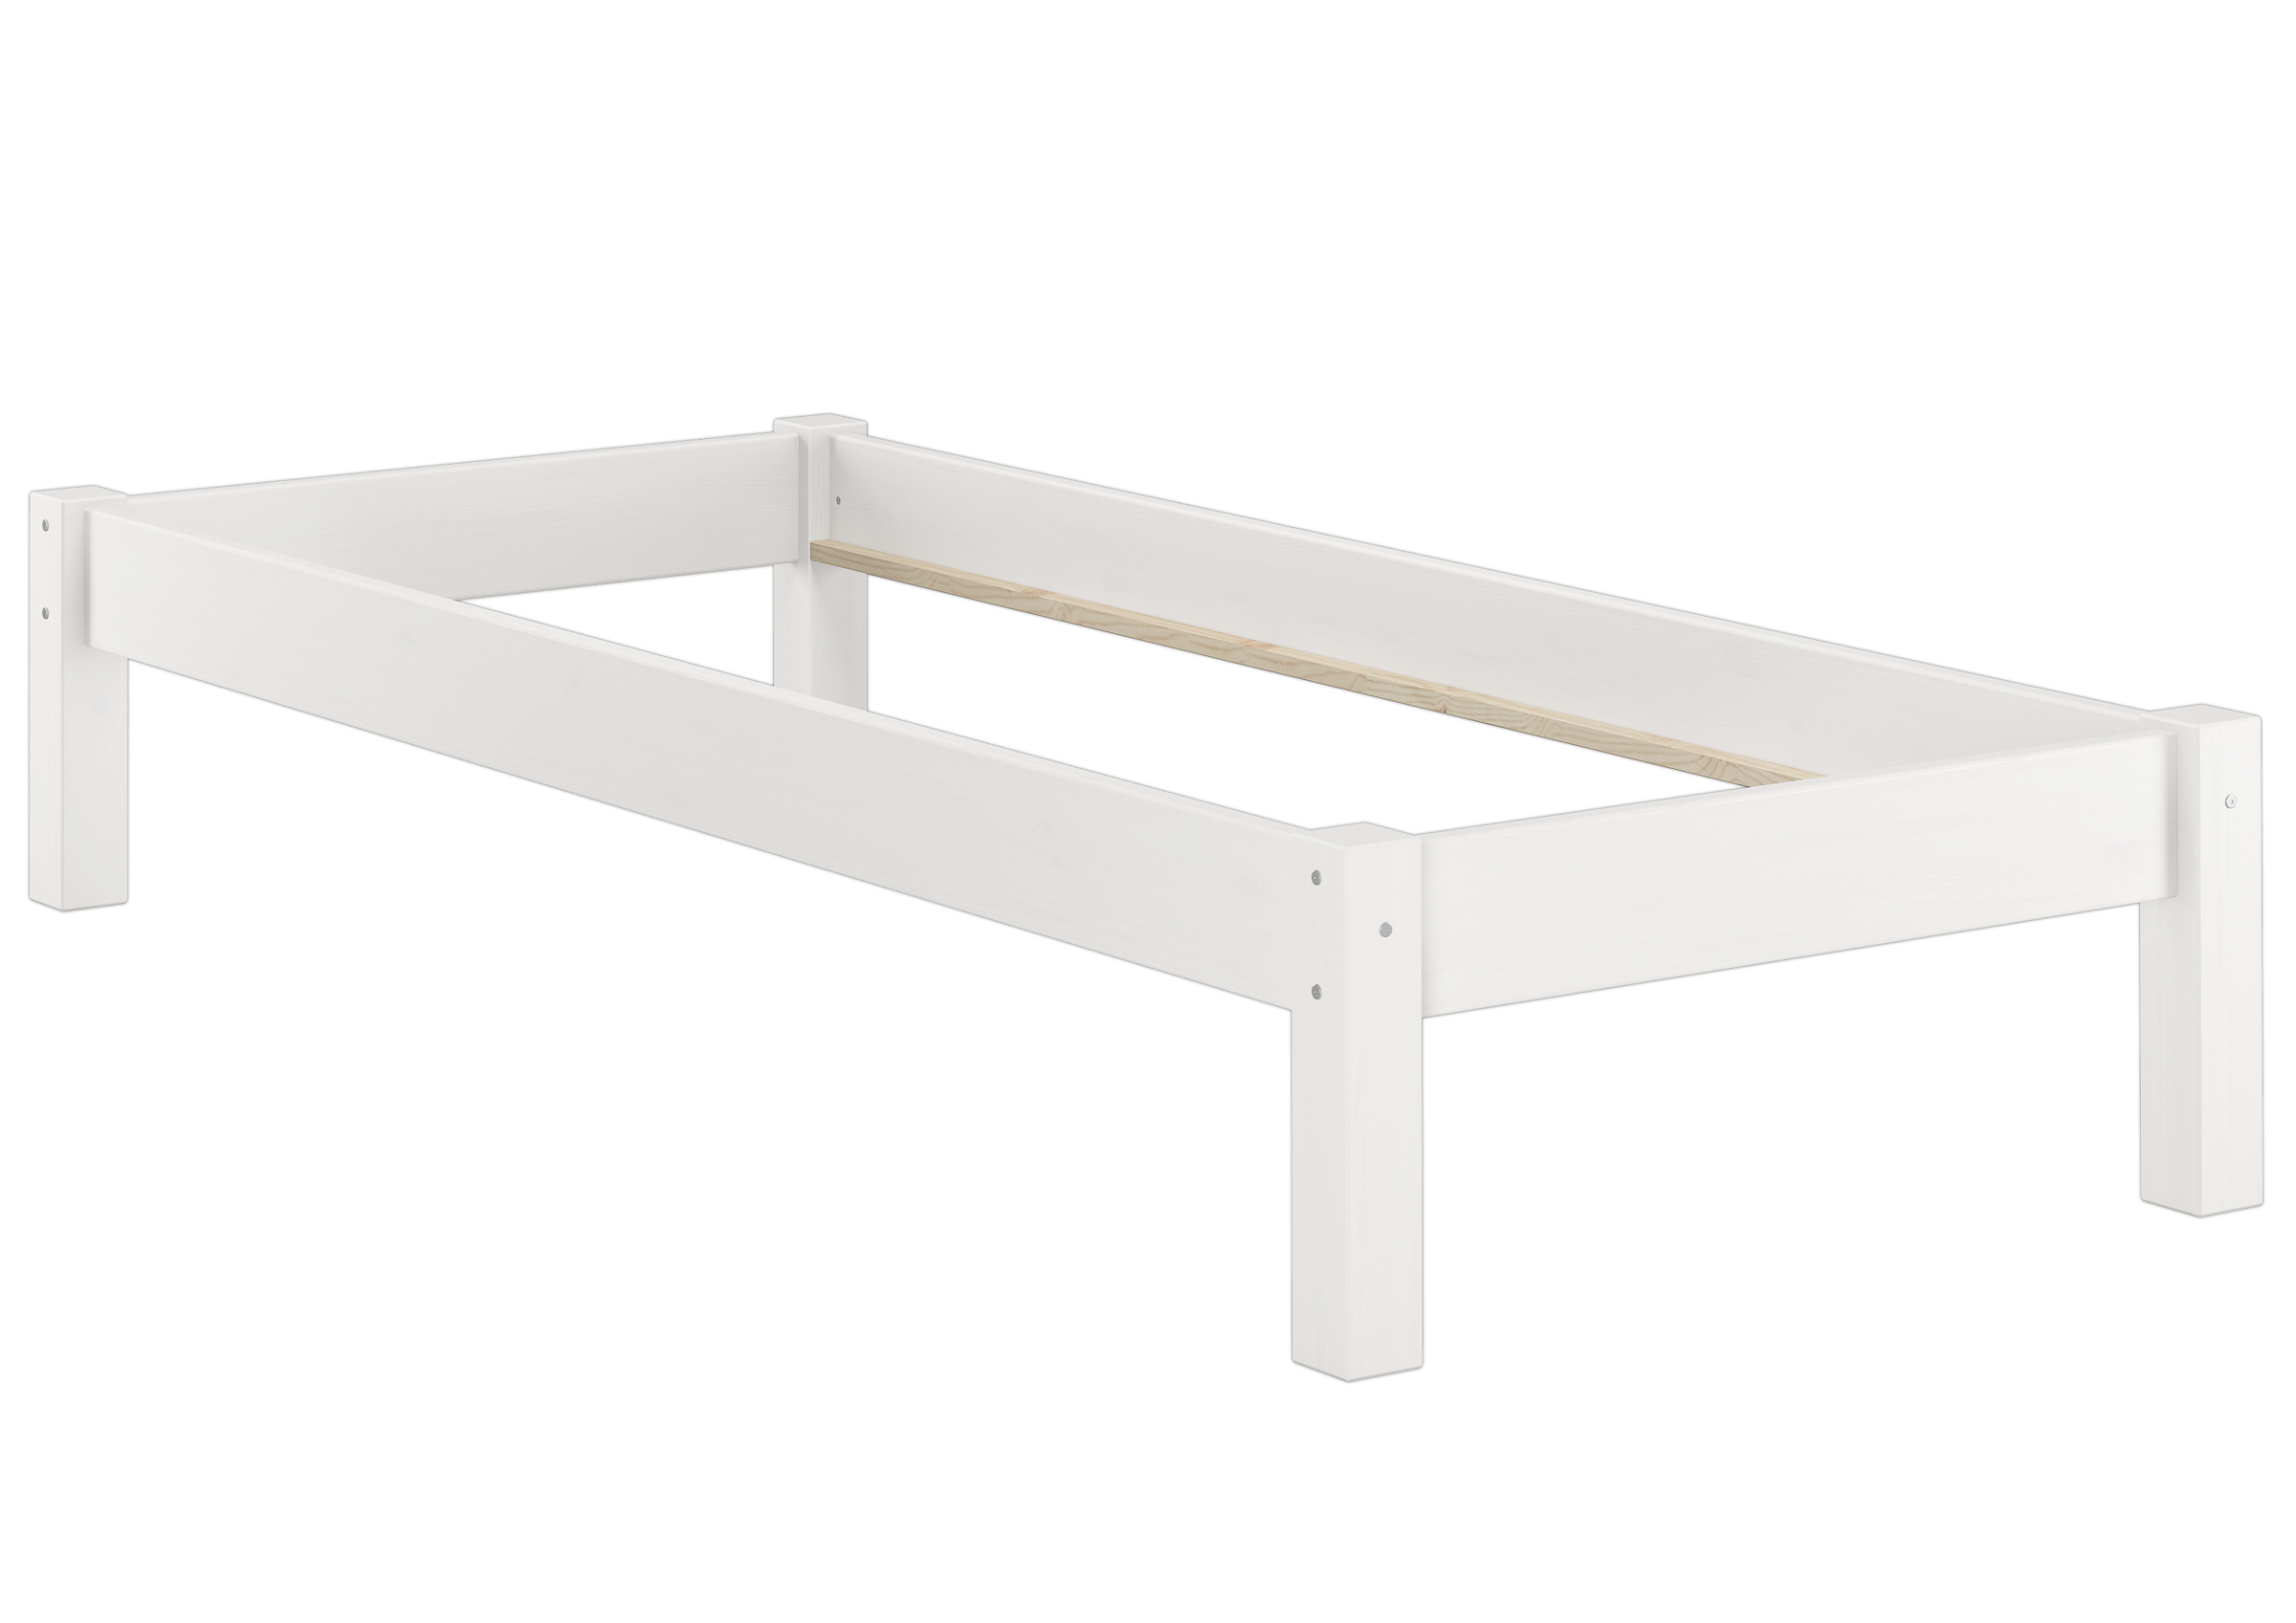 Solid White Pine Futon Bed For Mattress